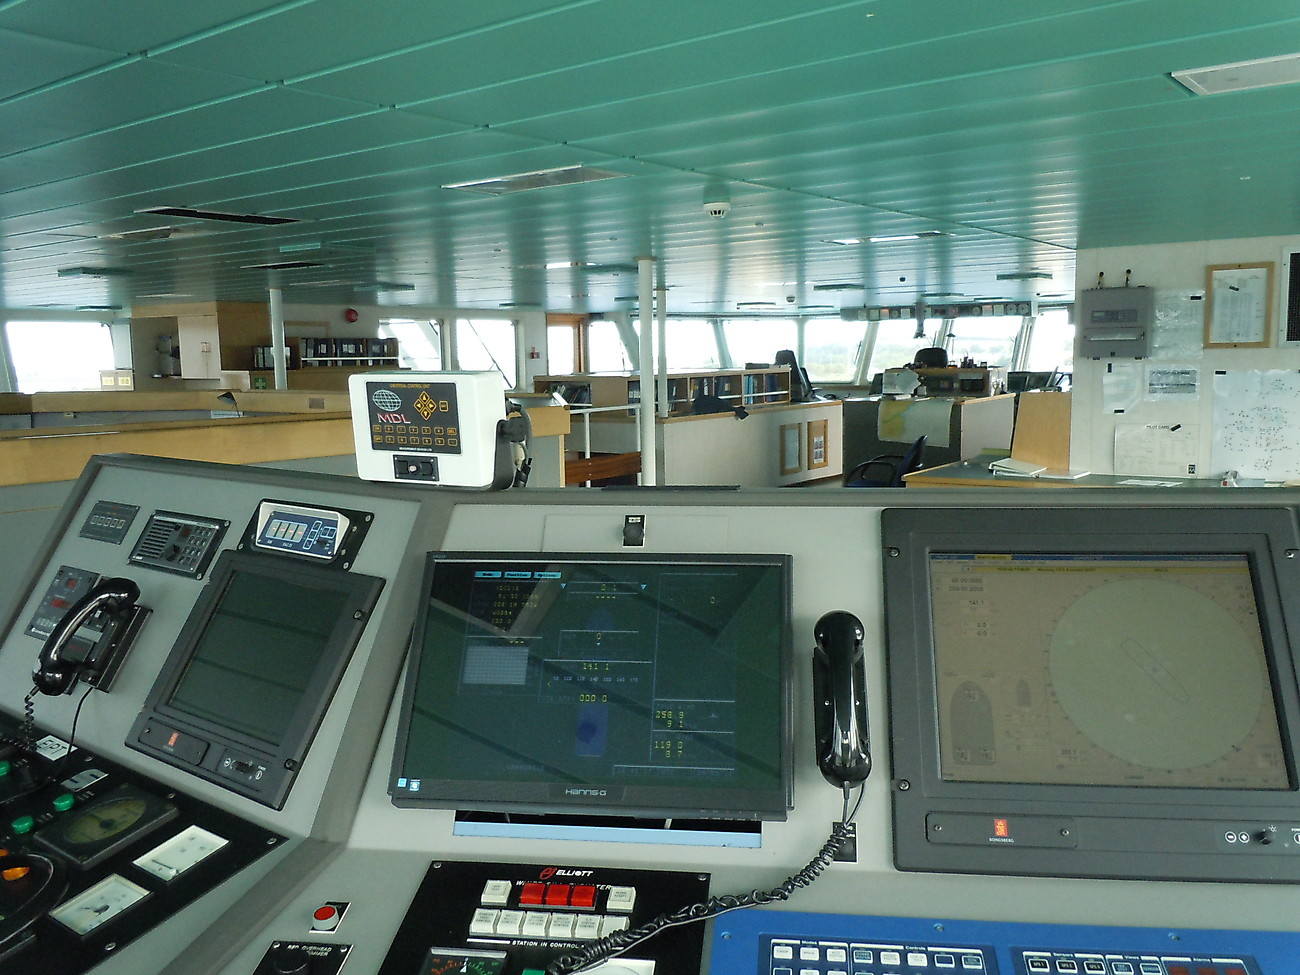 Bridge view - there are smaller computer rooms!